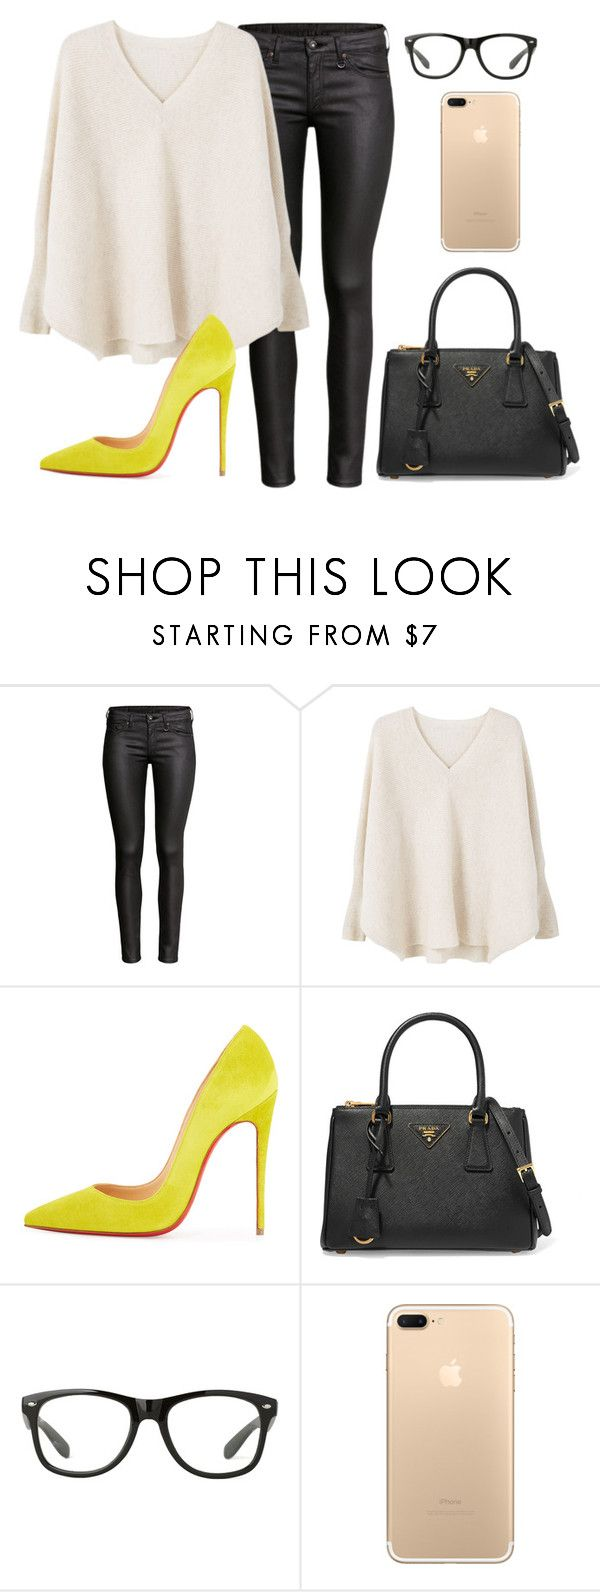 """""""Untitled #252"""" by jovanaaxx on Polyvore featuring H&M, MANGO, Christian Louboutin and Prada"""